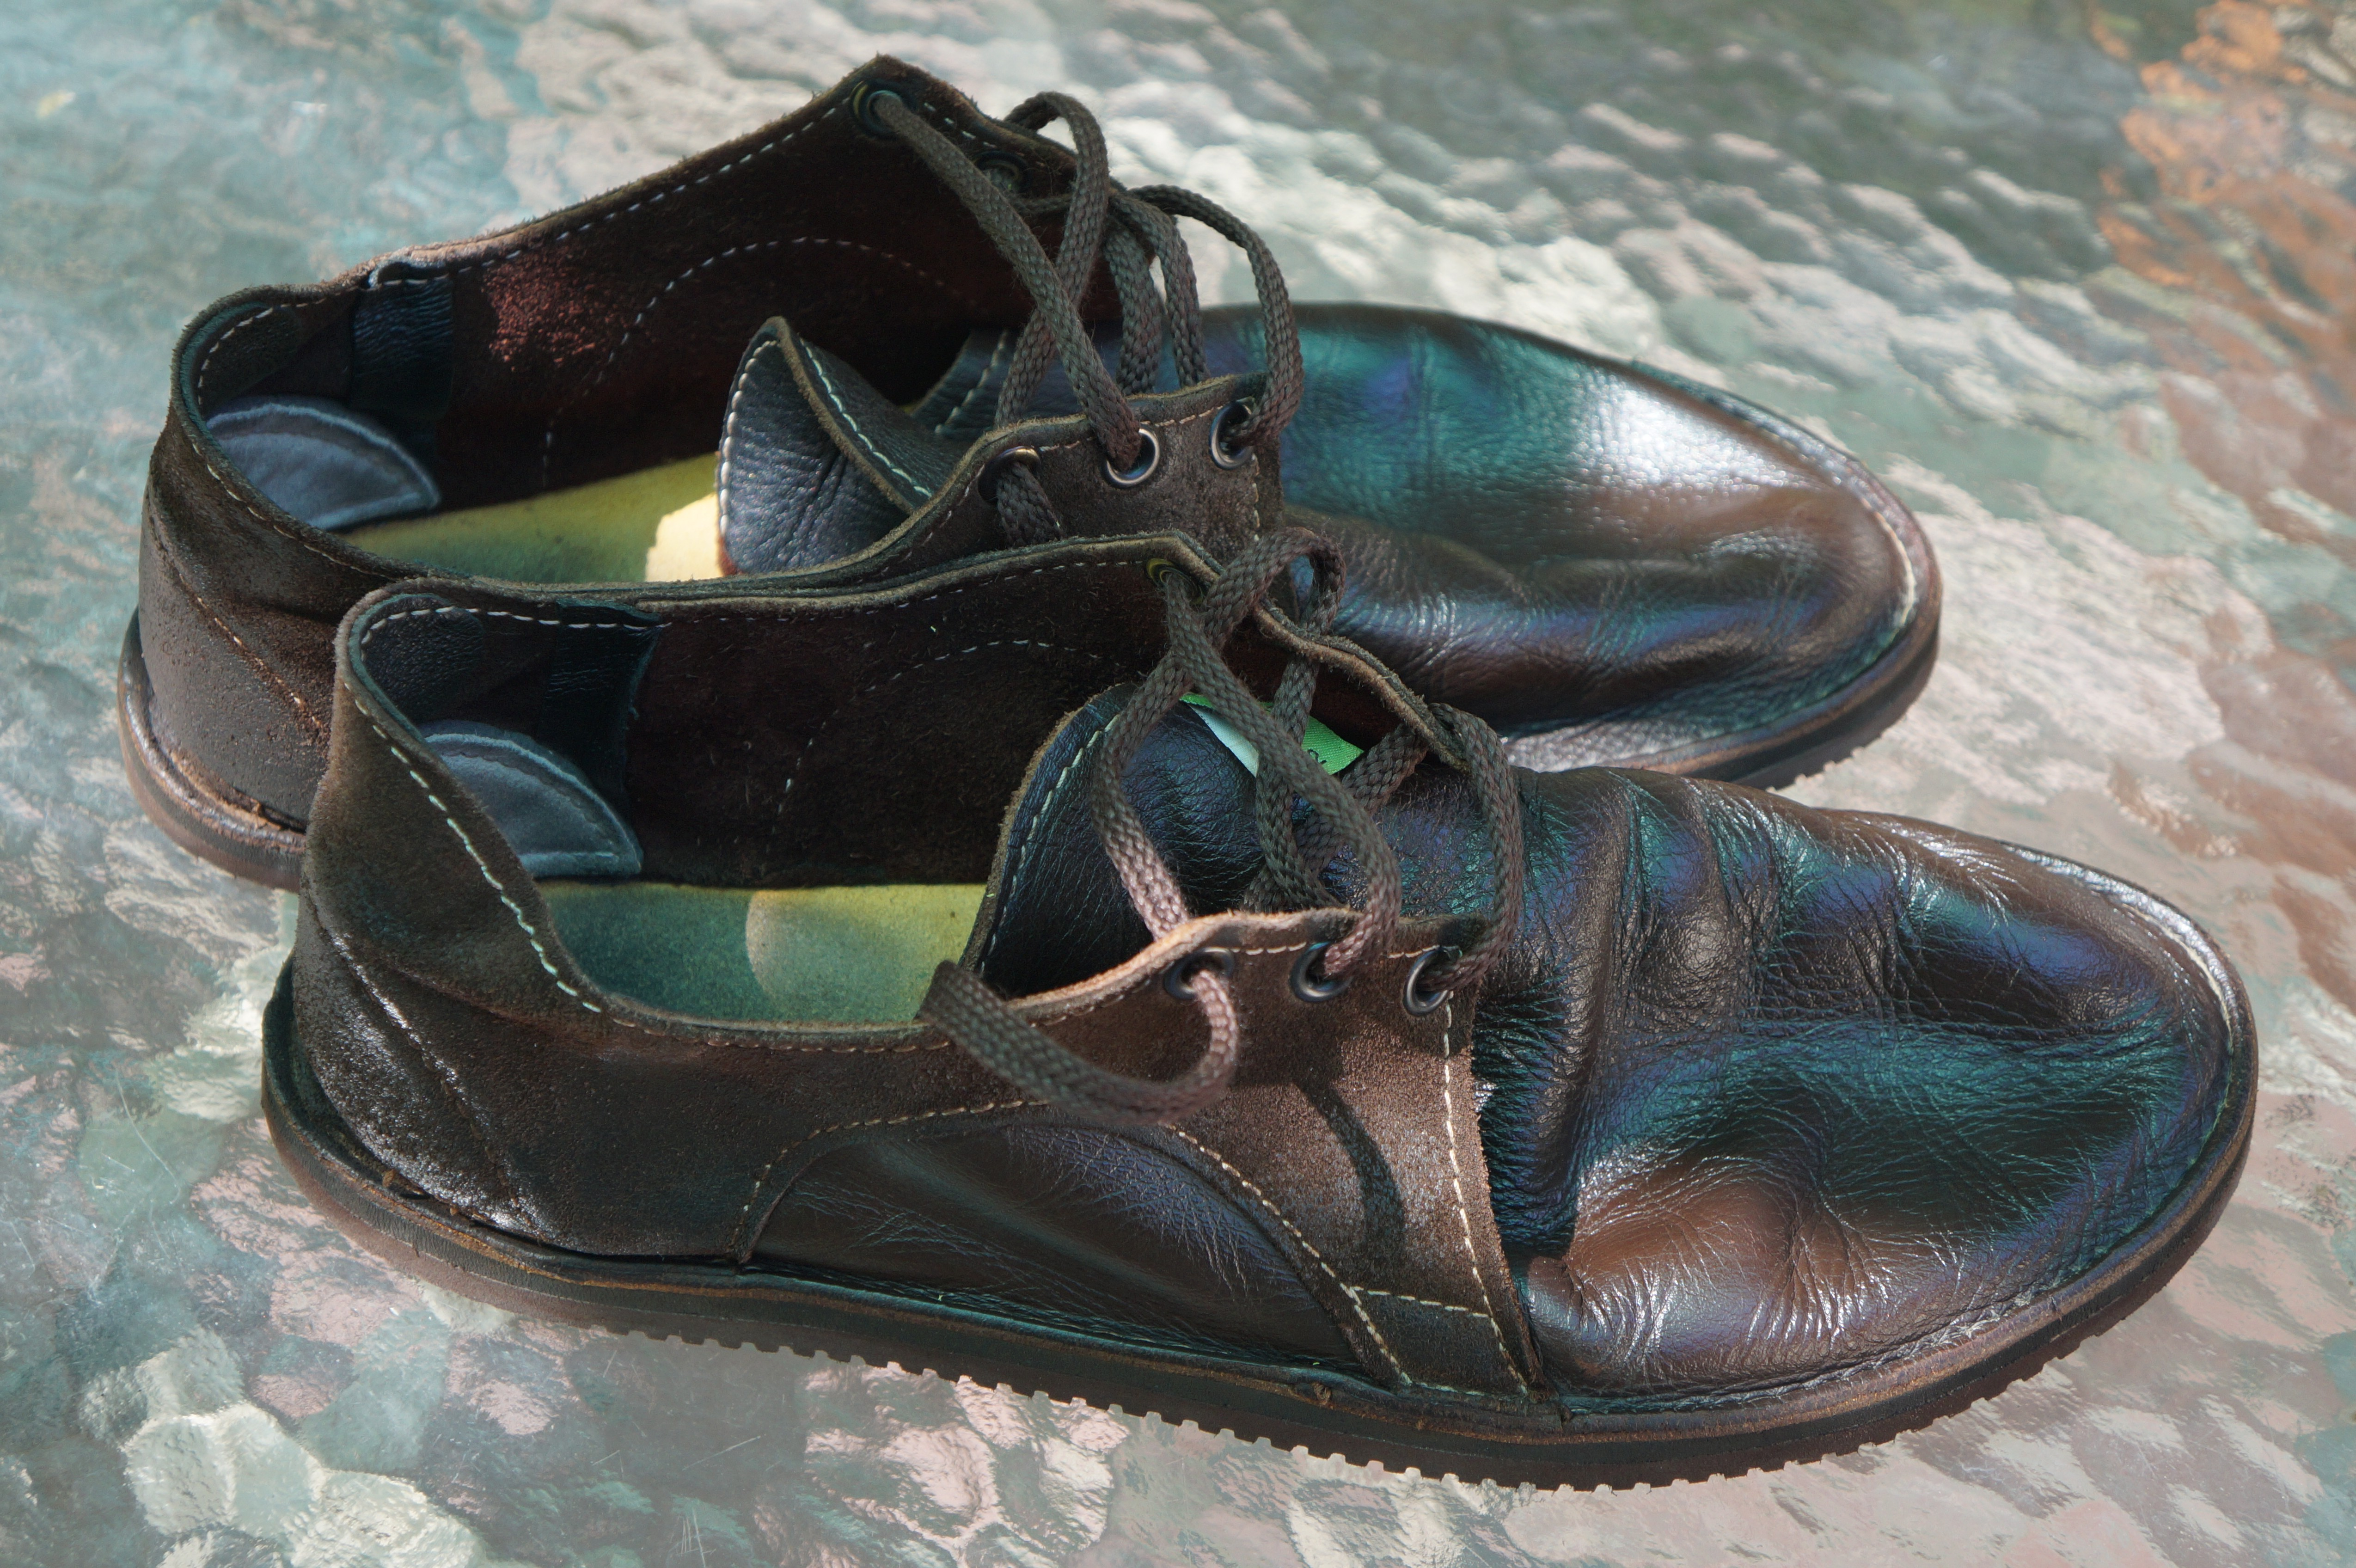 How To Repair Leather Shoes That Got Wet